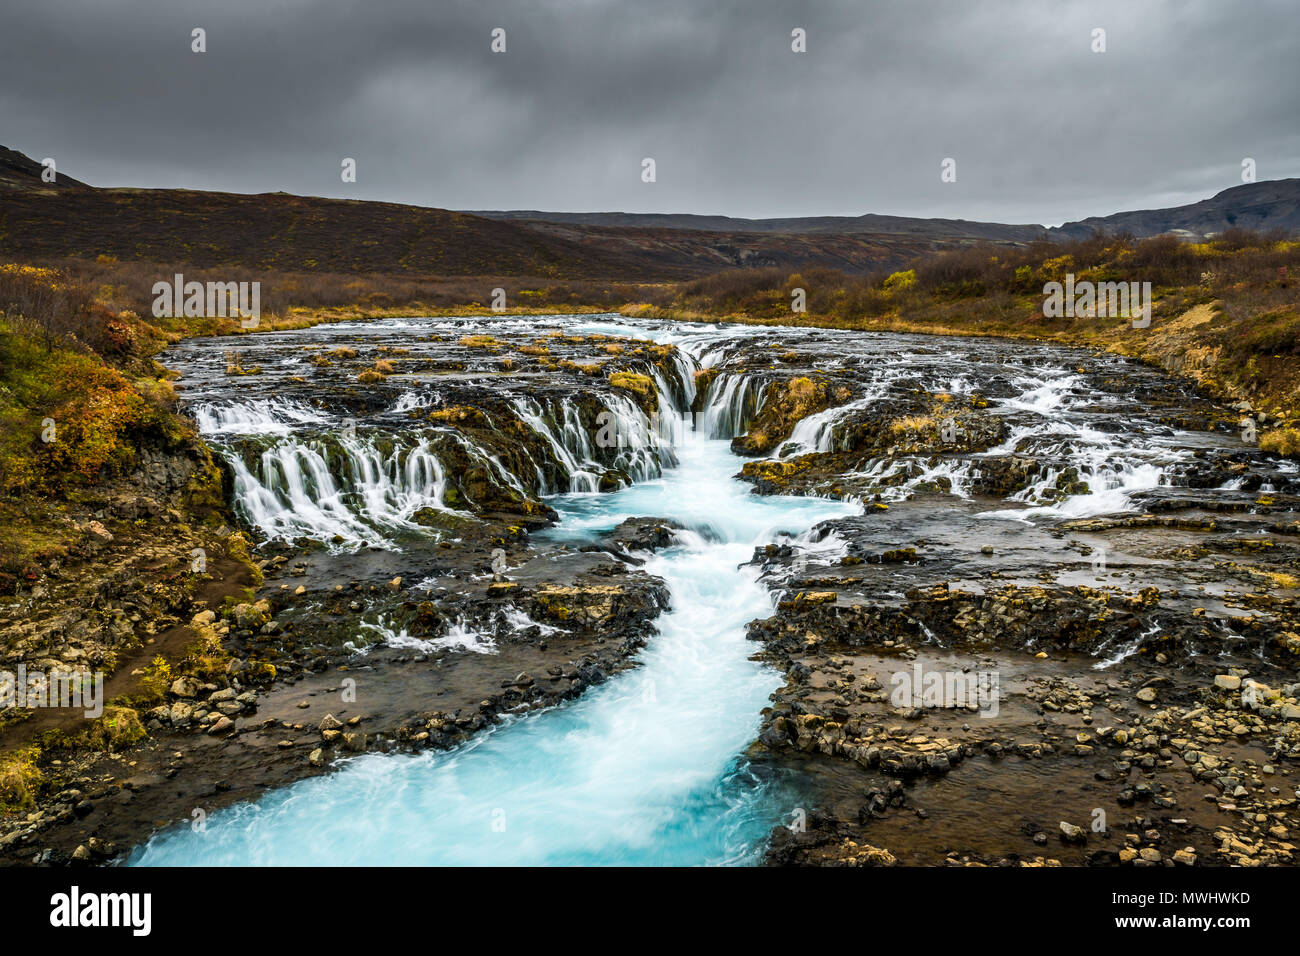 just a small but very beautiful Waterfall along the Golden Circle. Definitely one of my favorite locations in Iceland but somewhat hard to get to, sin - Stock Image